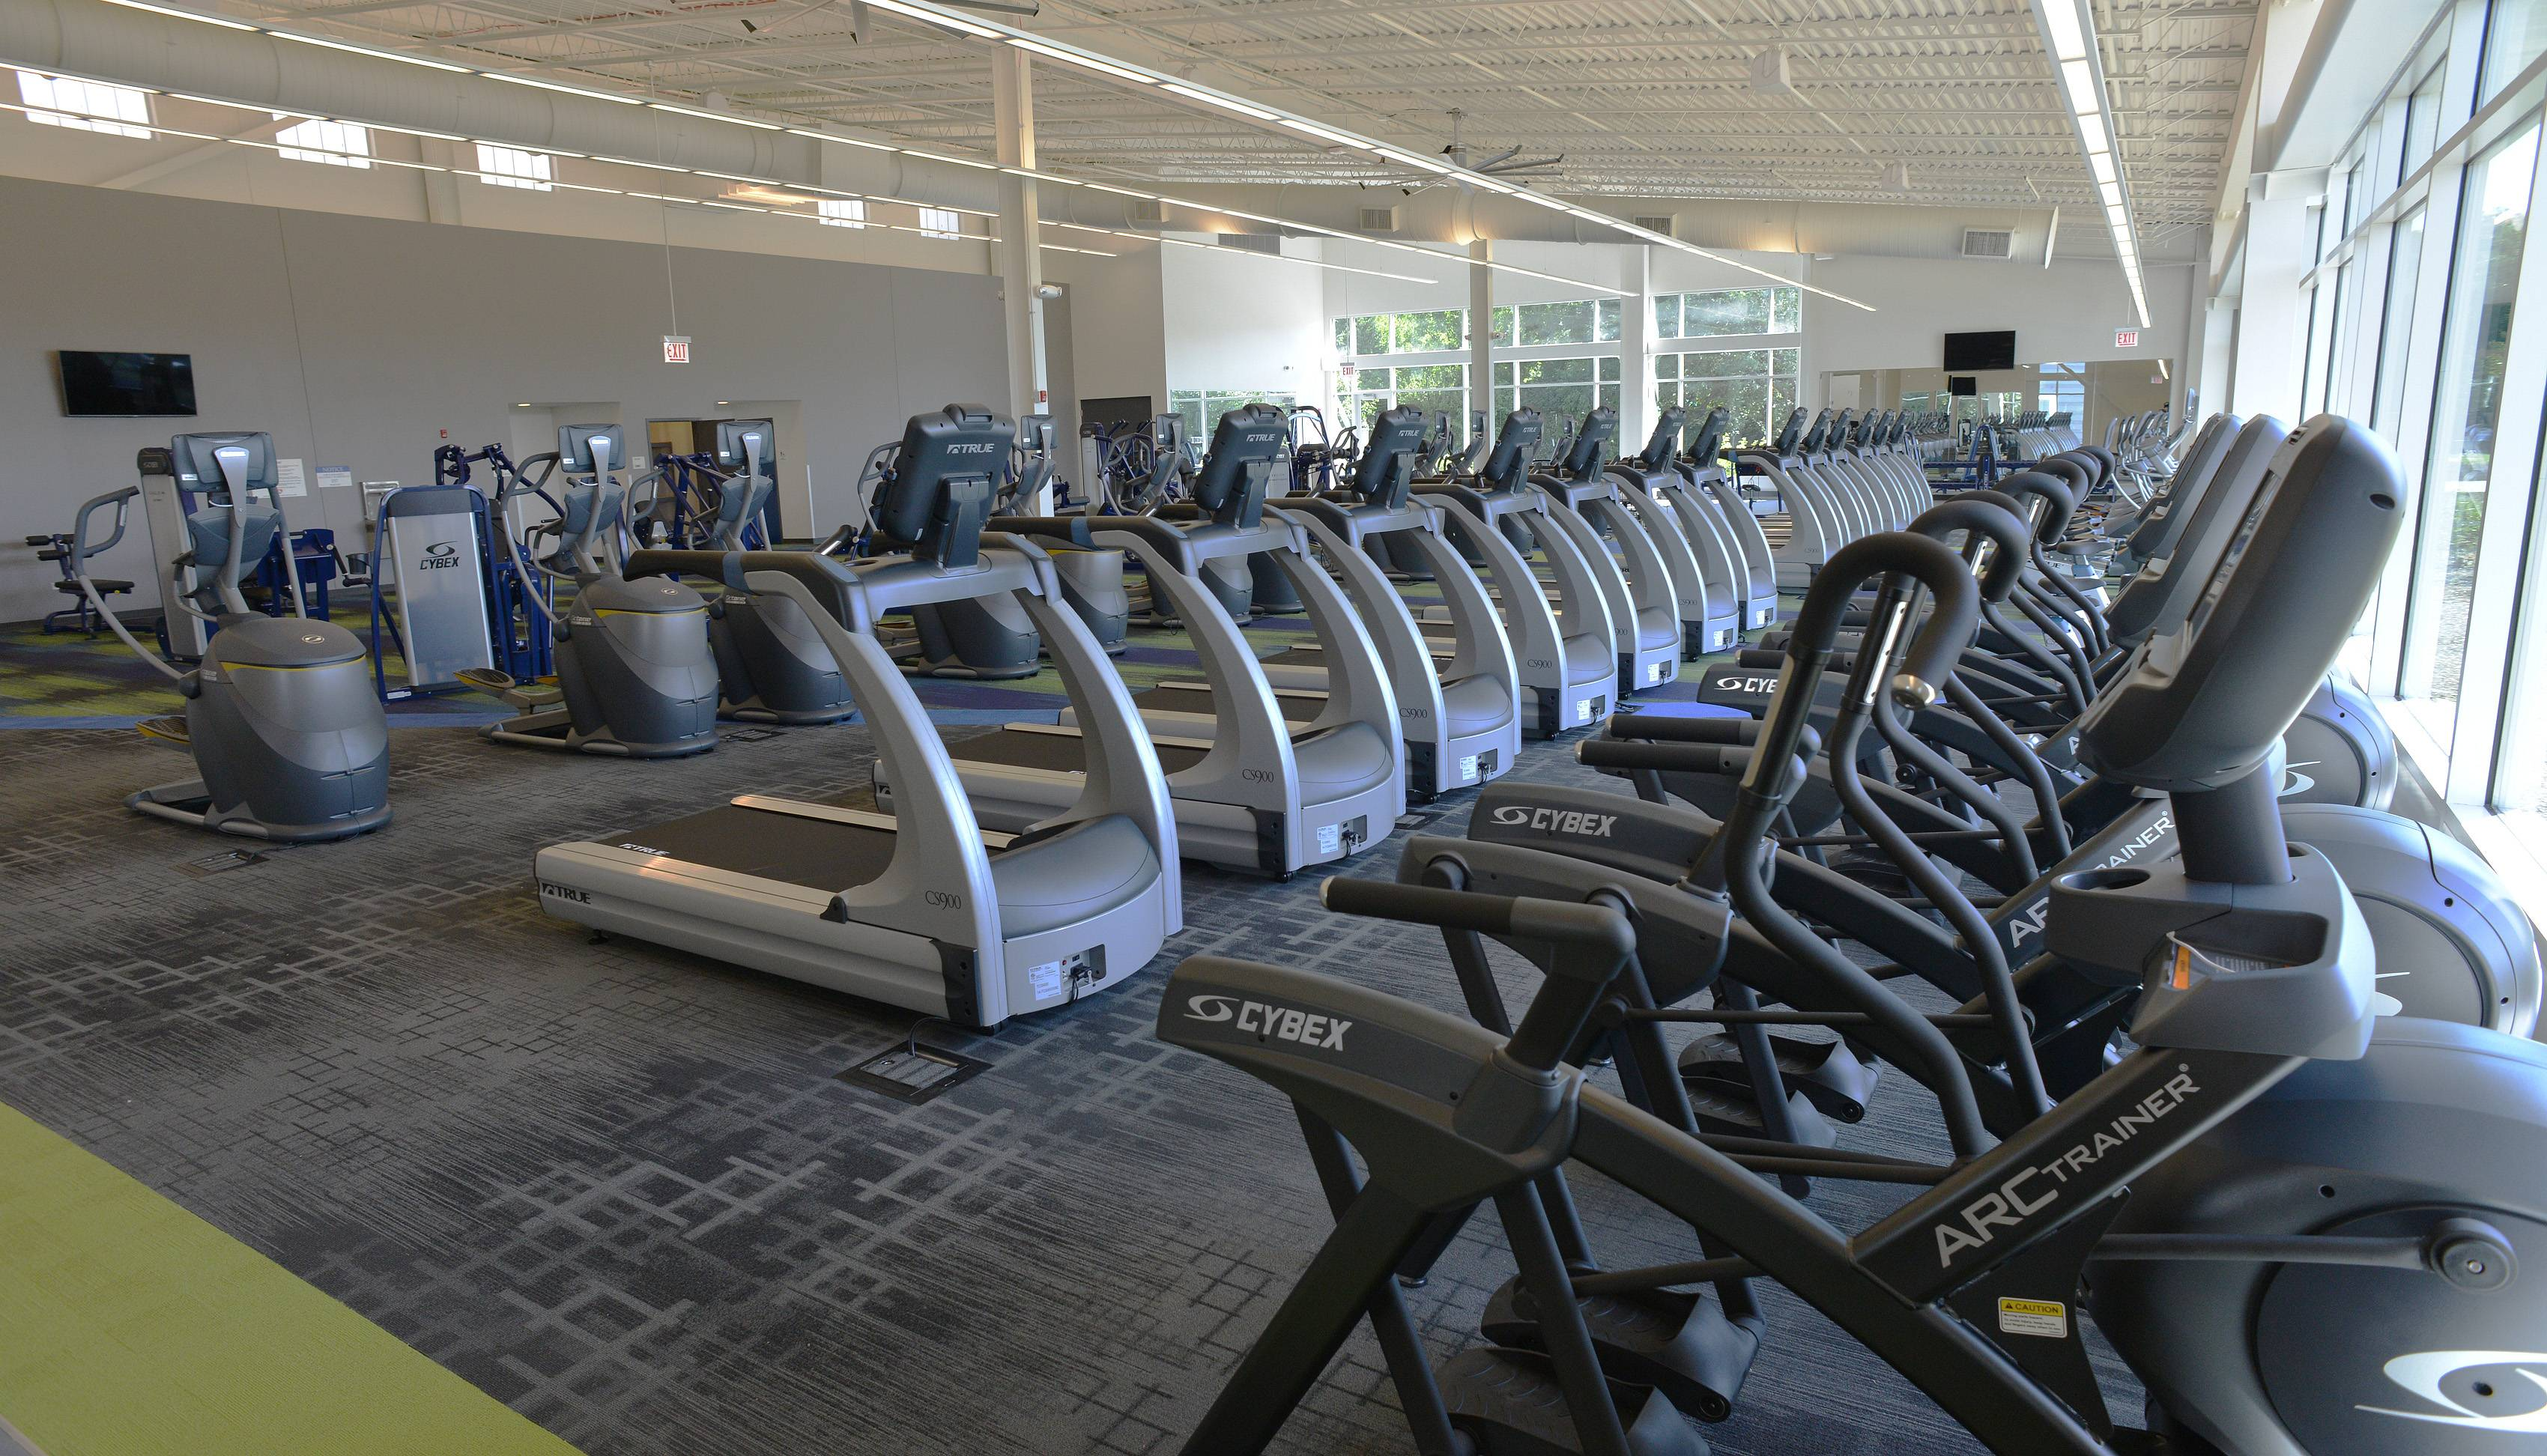 One of the highlights of West Chicago Park District's new $15.5 million indoor recreation center is the 8,000-square-foot fitness center that features treadmills and elliptical trainers, many with video screens.